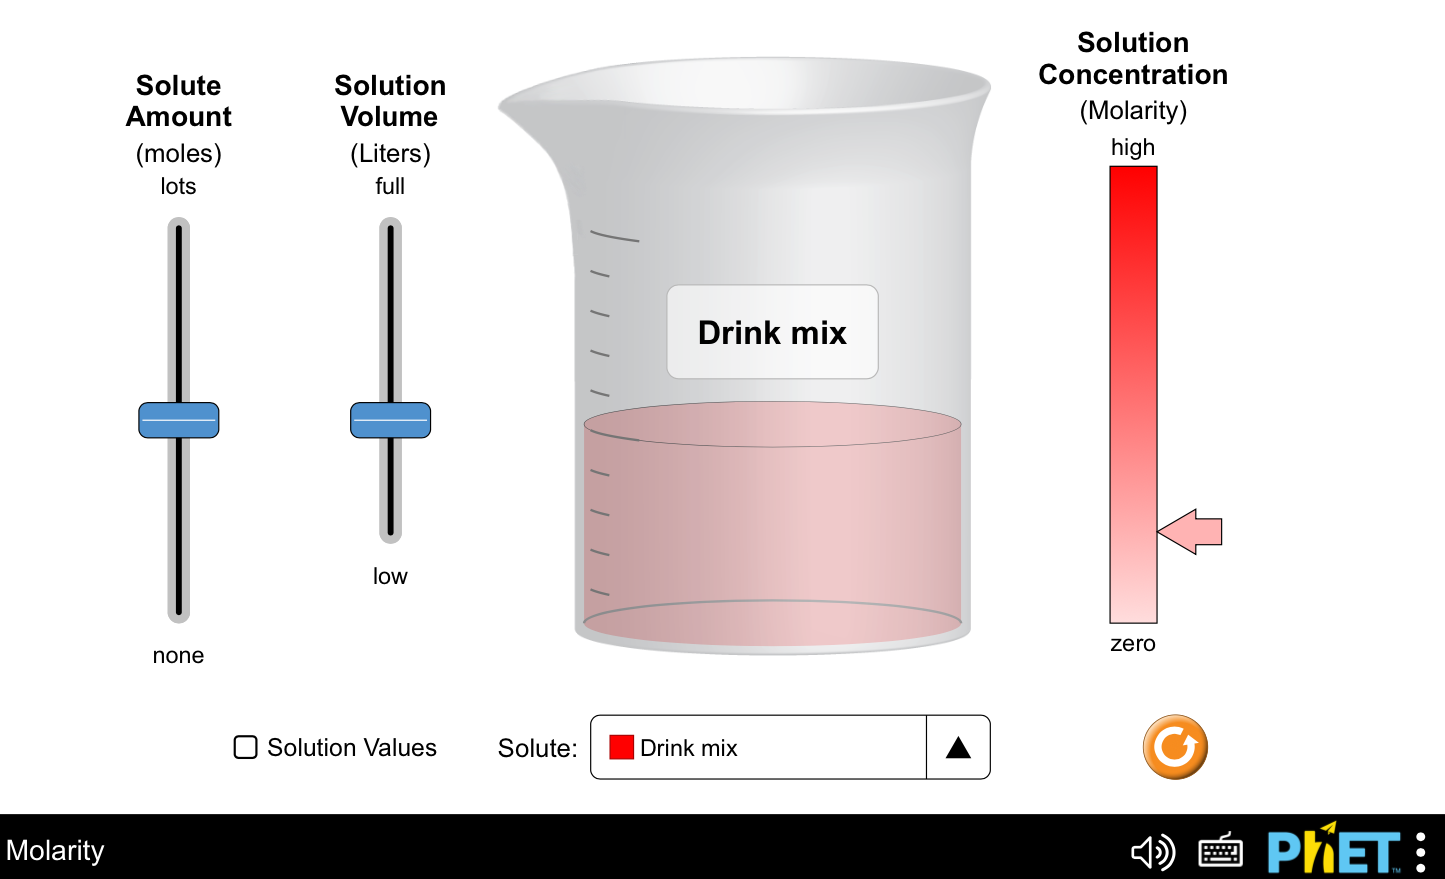 Screenshot: Phet Simulation - Molarity.  Slide adjusters for Solute amount, Solution Volumne, with a large beaker of liquid and a indicator of the Solution Concentration.